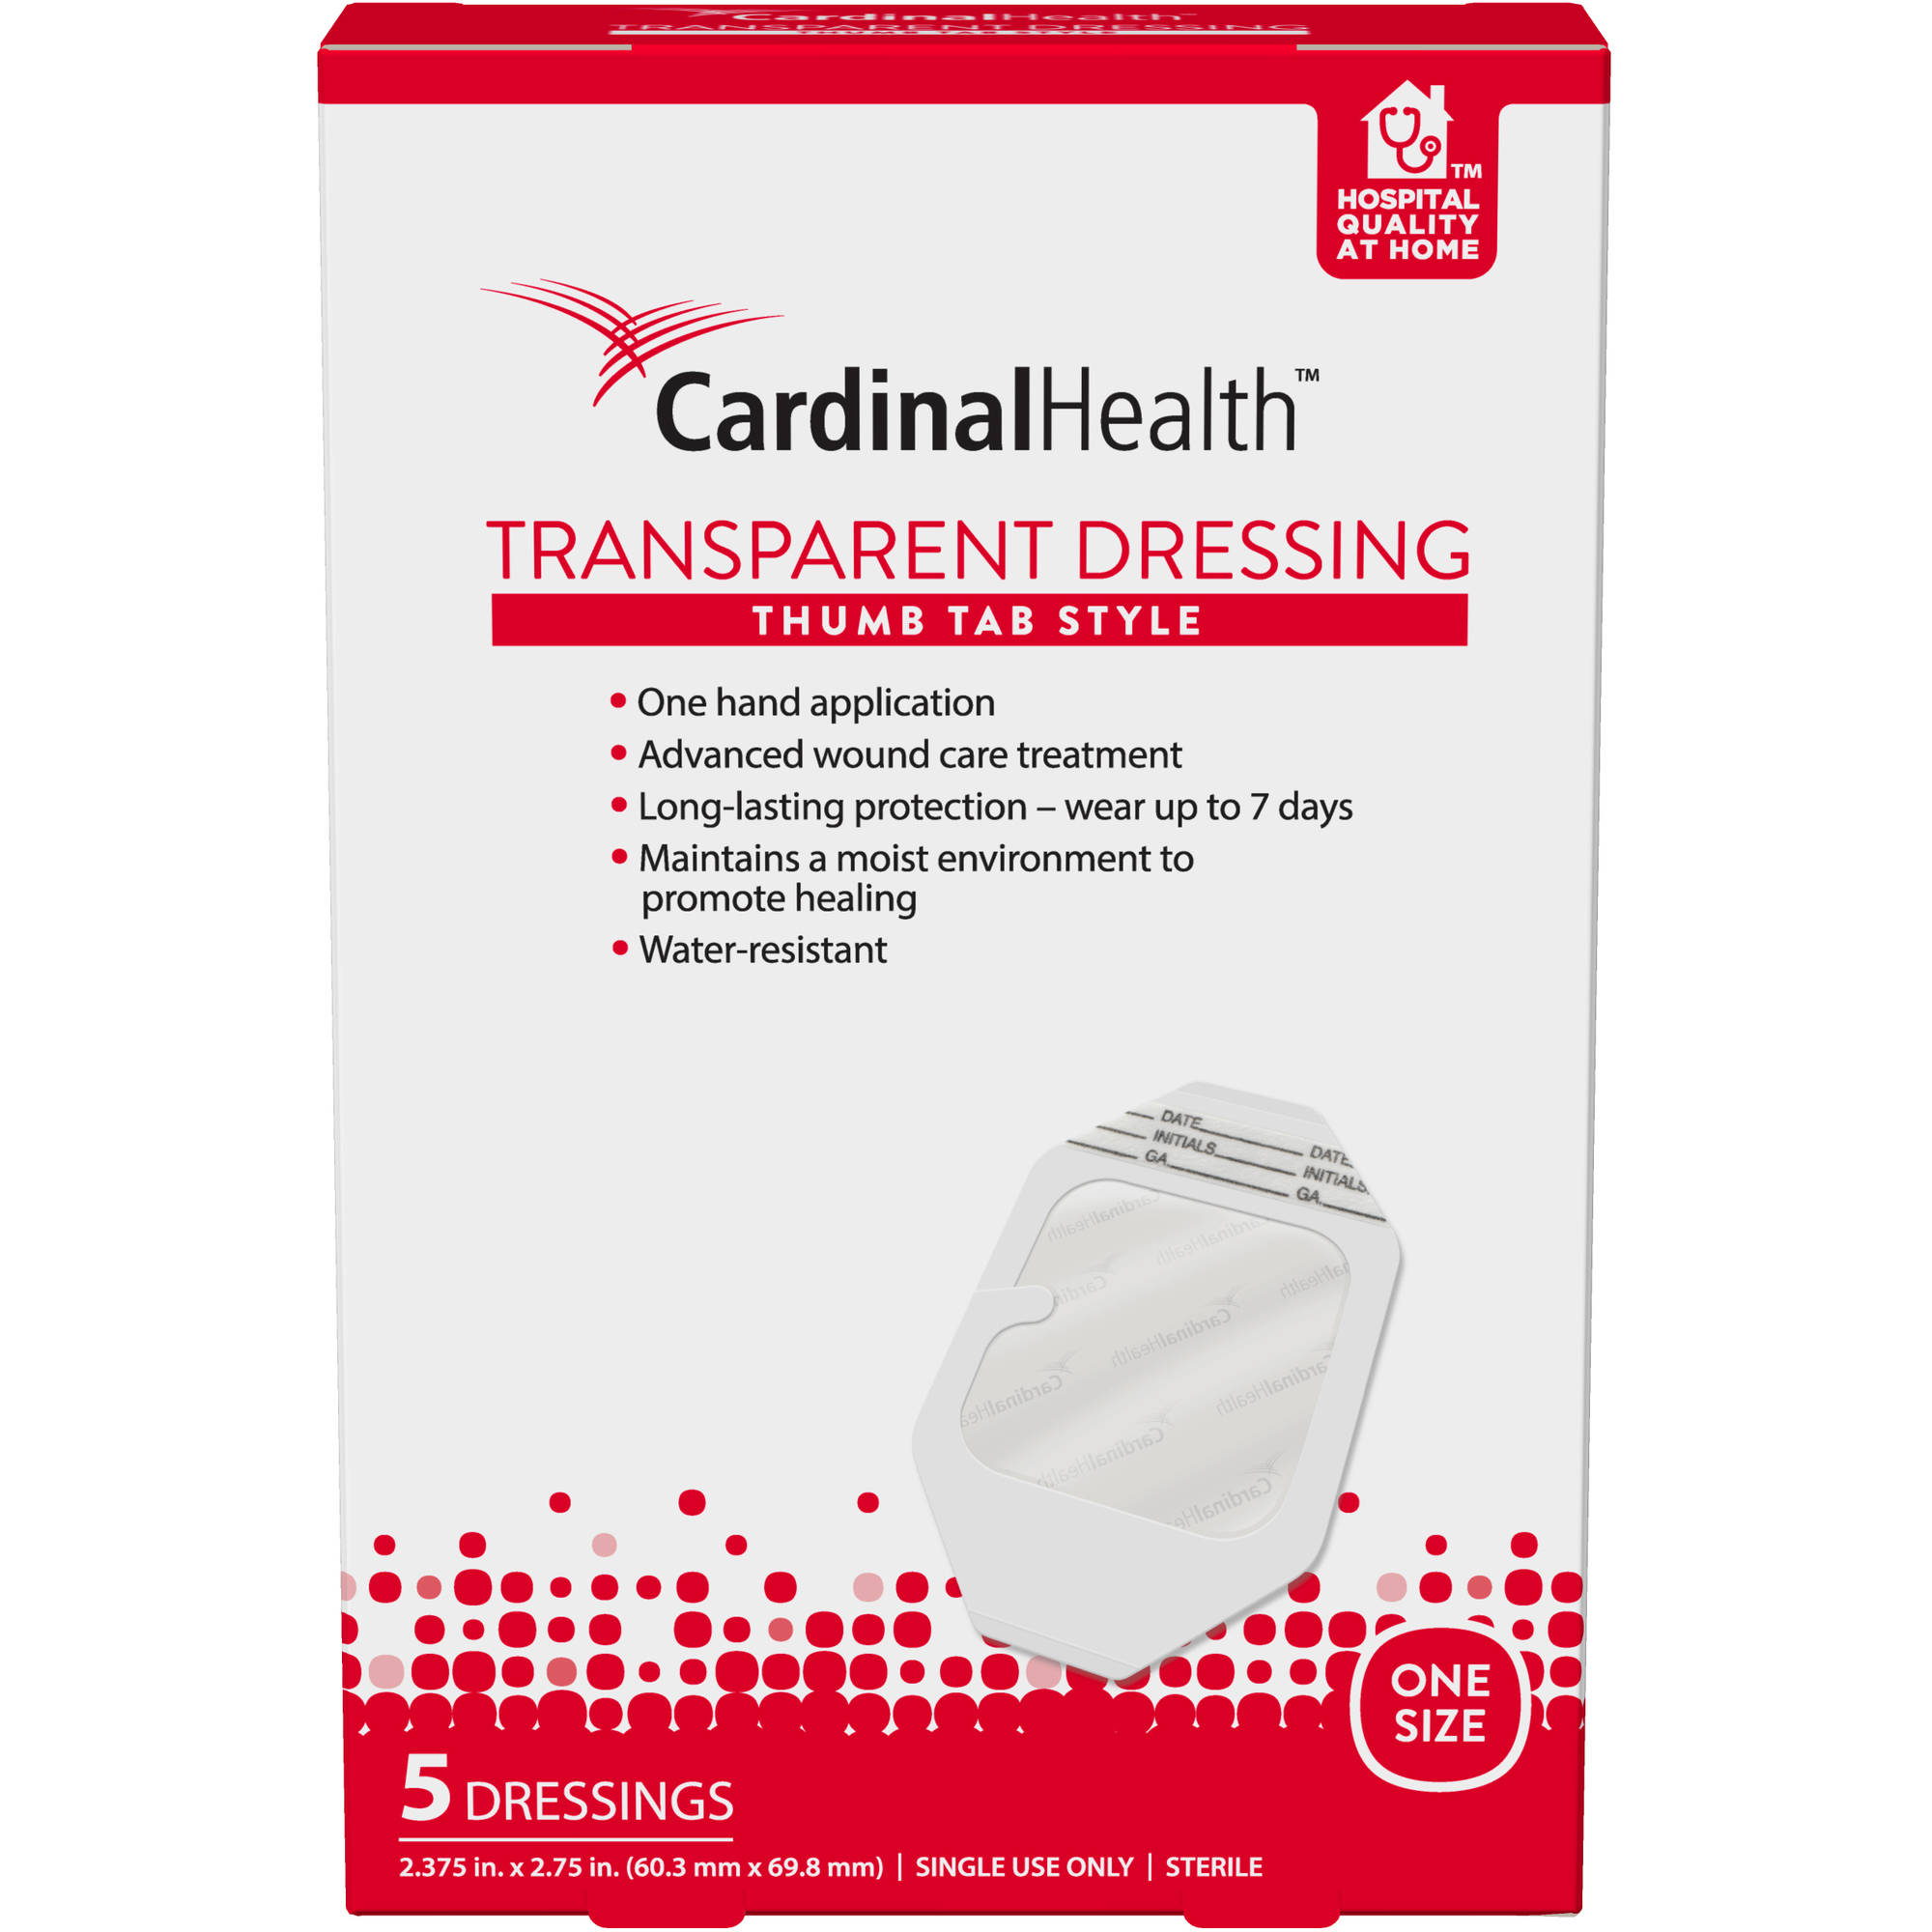 Cardinal Health 2.375x2.75-Inch Thumb Tab Transparent Dressing 5 Count